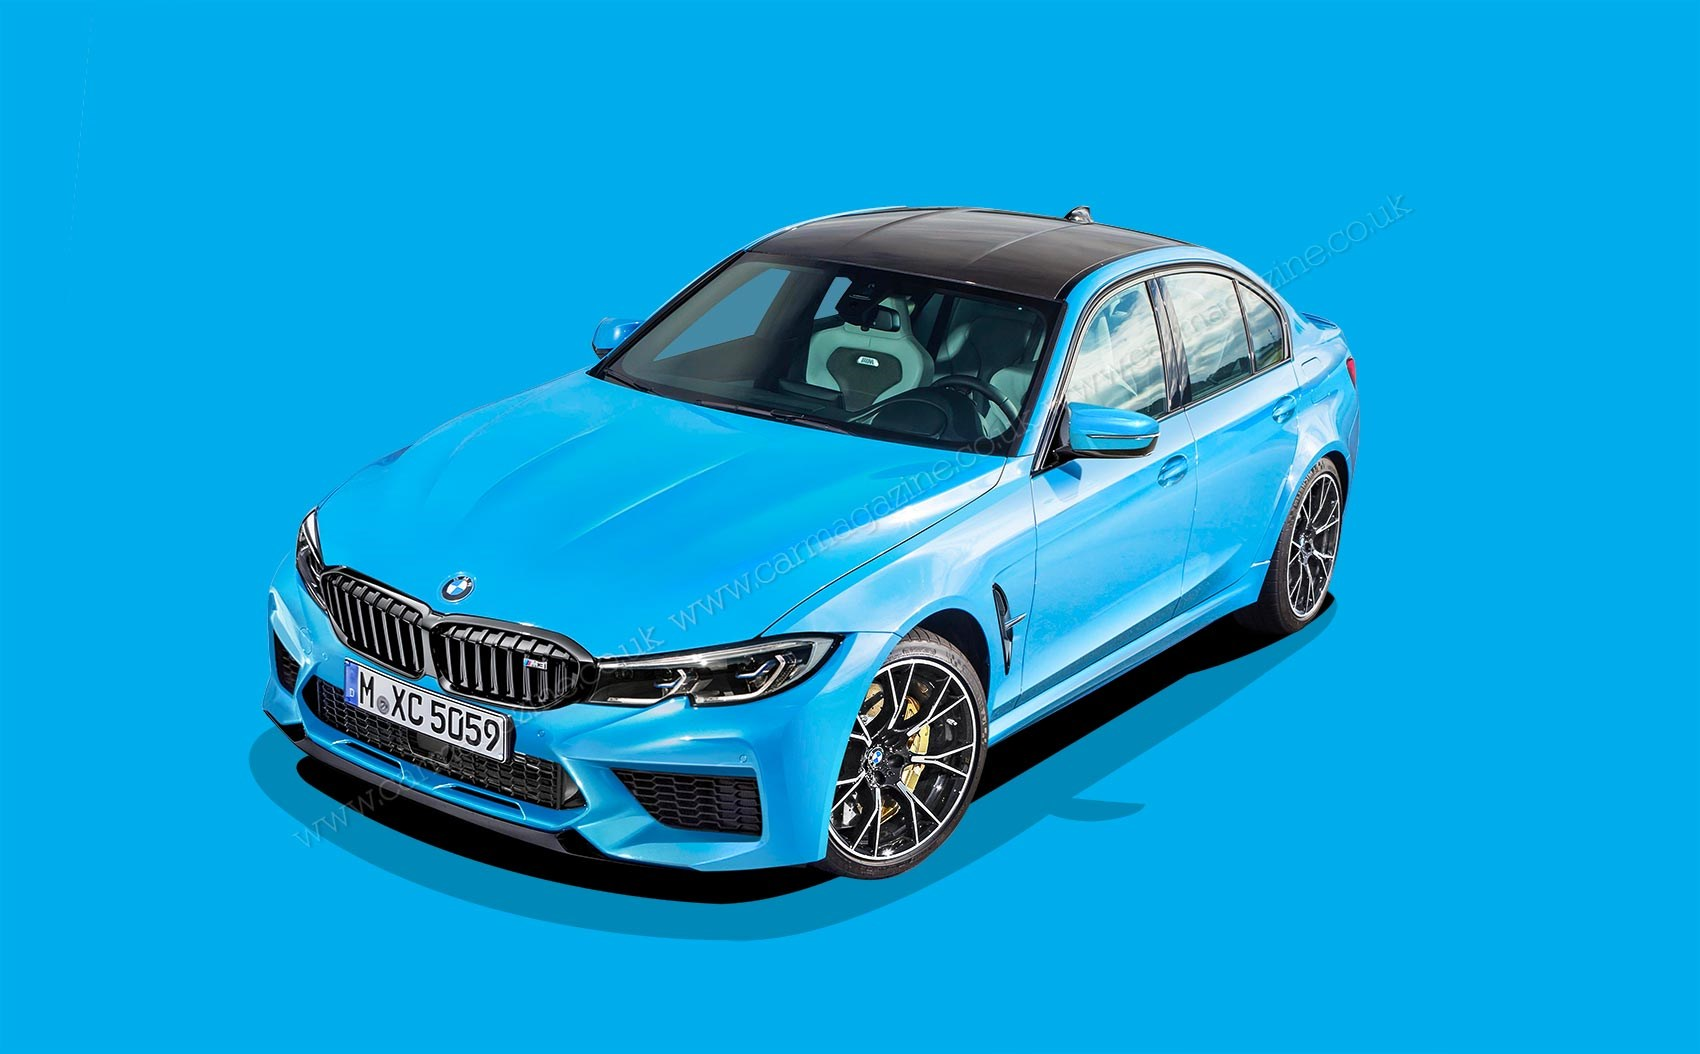 New Bmw M3 Confirmed With 480 Hp 358 Kw And 510 Hp 380 Kw